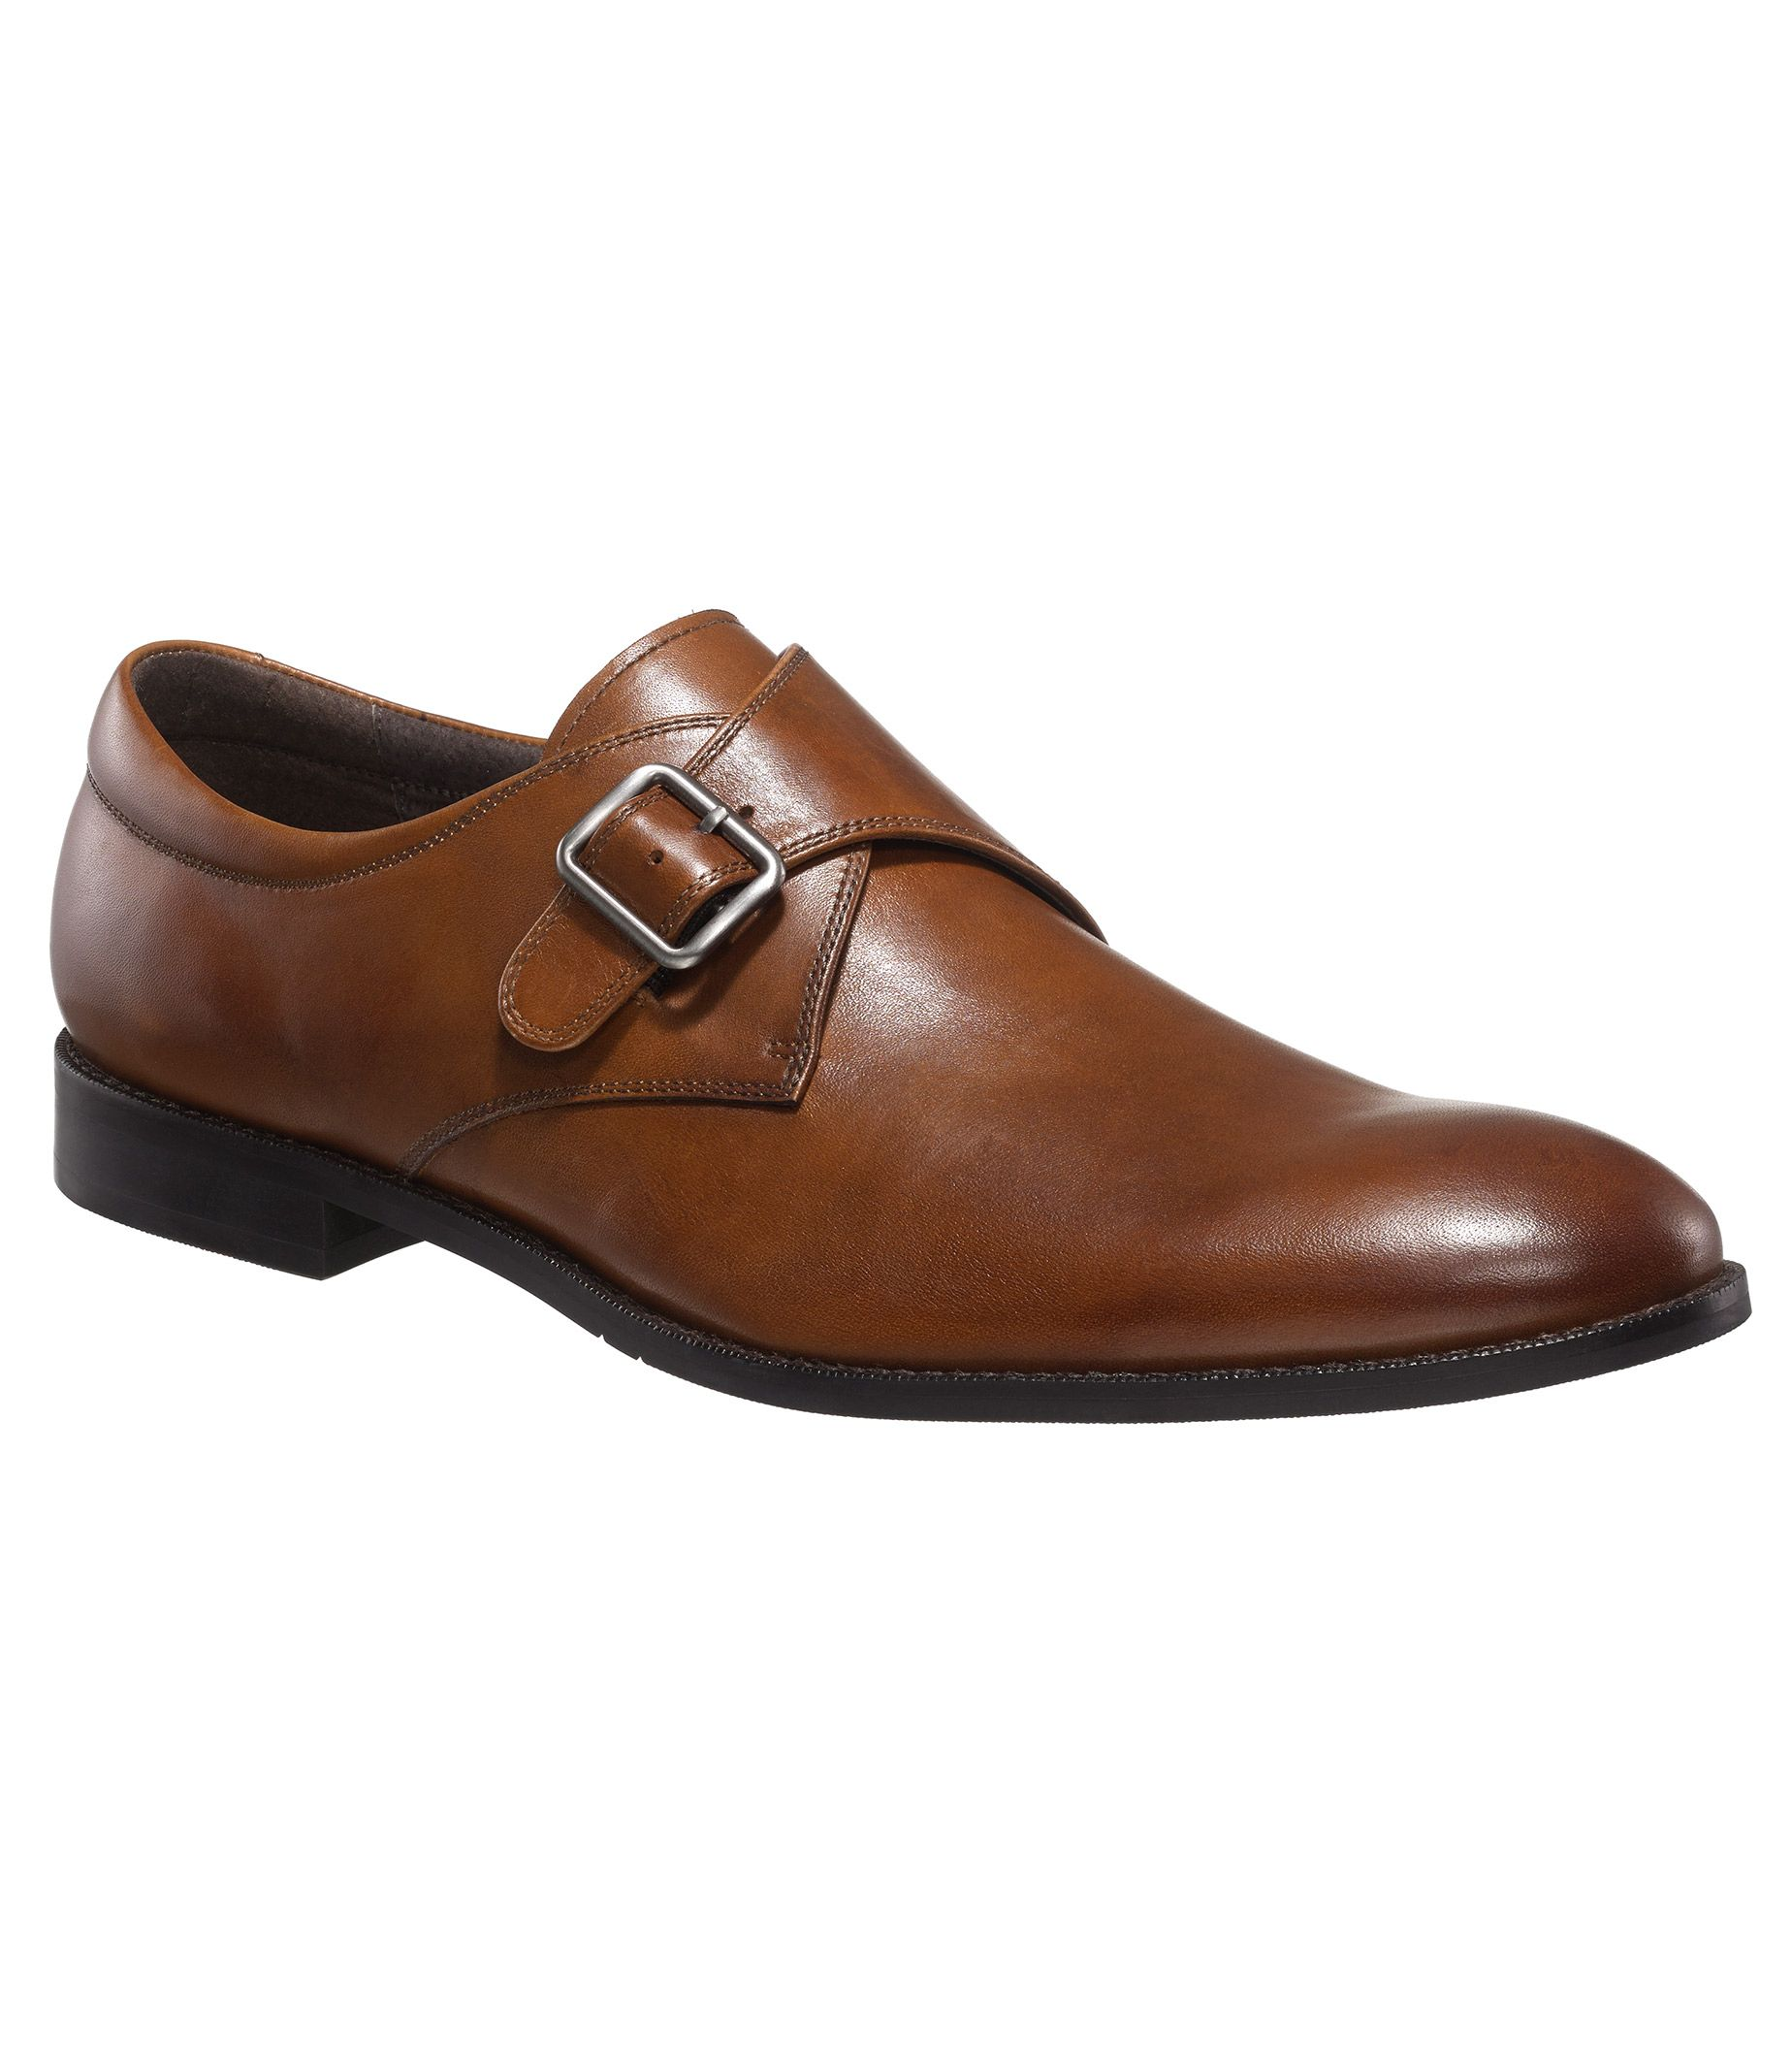 8bef66fe6ca Joseph Abboud Dixon Monk Strap Dress Shoes CLEARANCE - Clearance ...